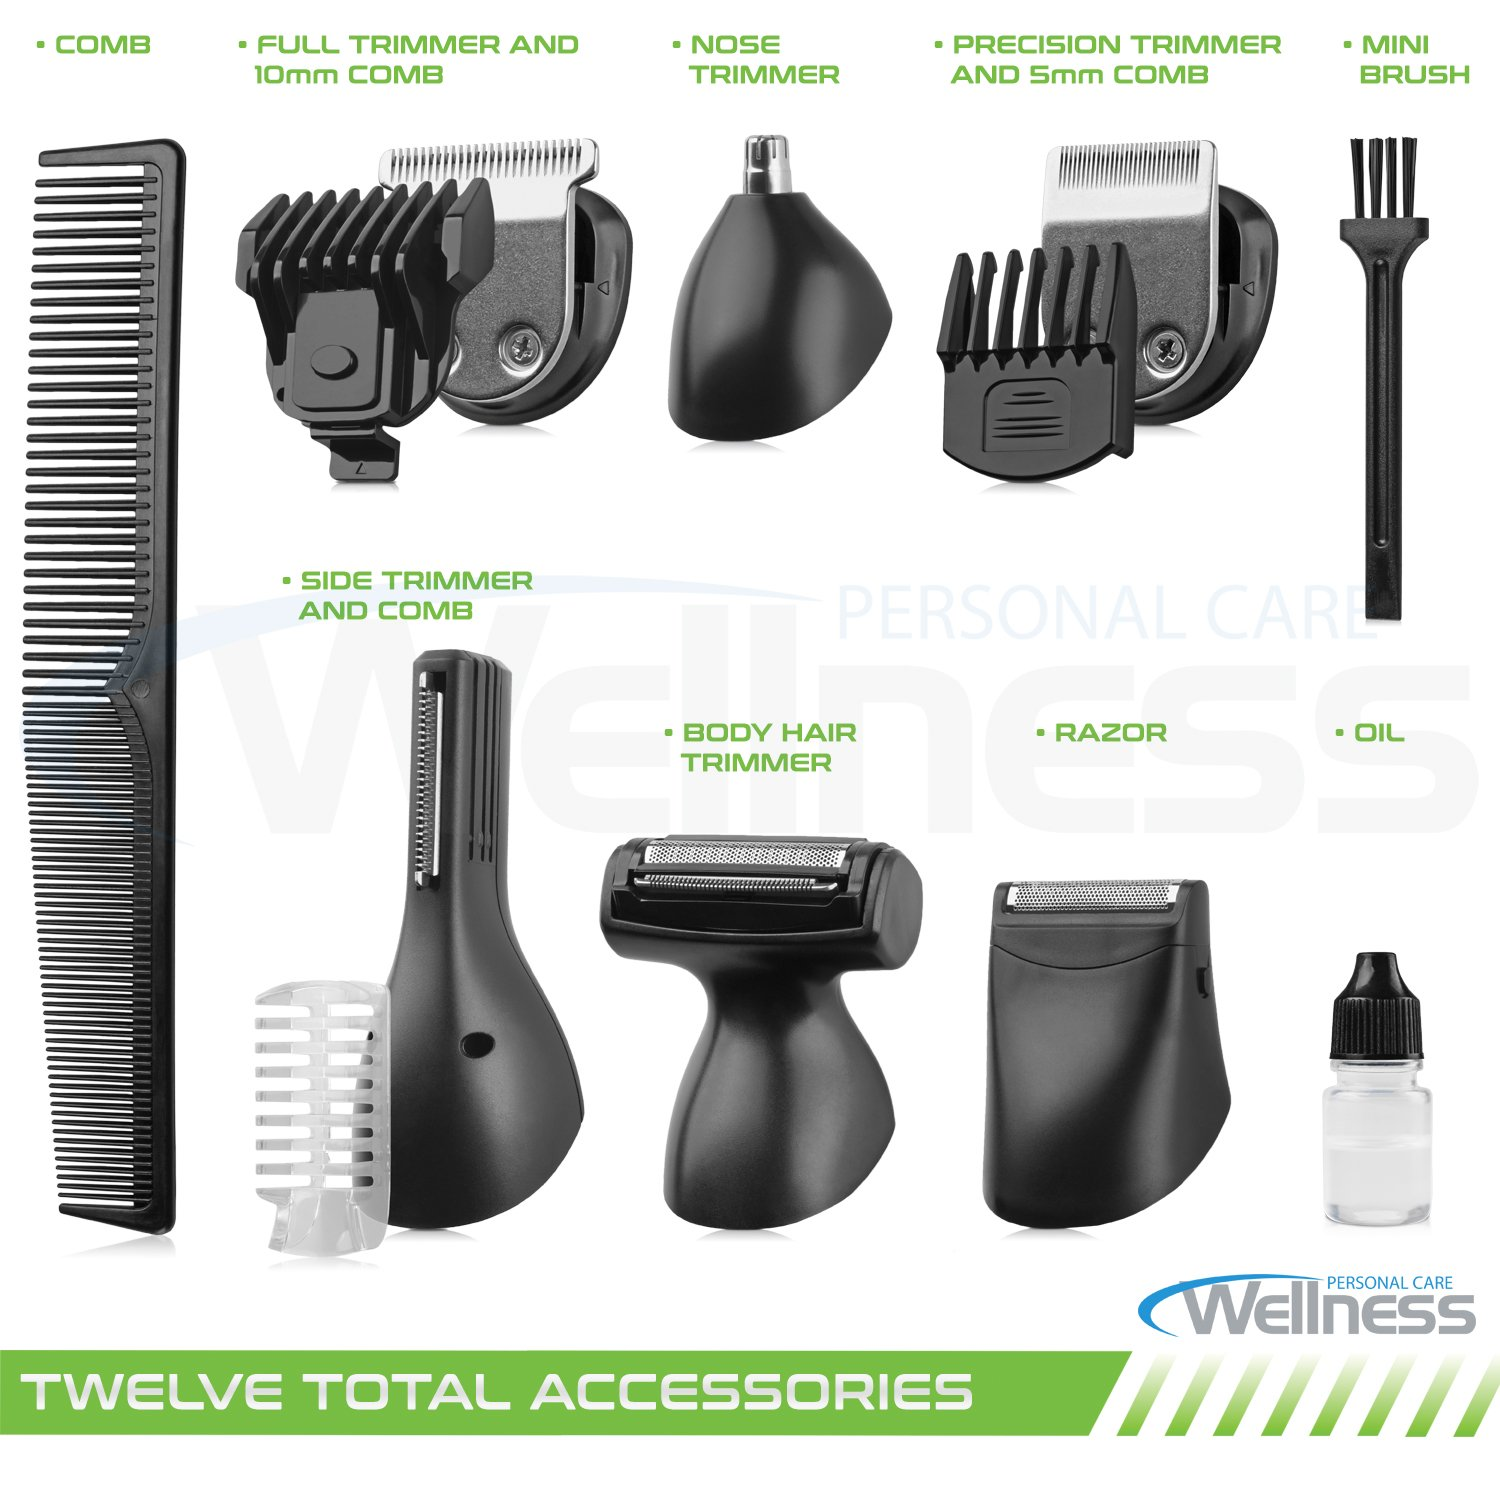 8 In 1 Men's Professional Grooming Kit, Cordless Beard Trimmer Hair Trimmer Kit